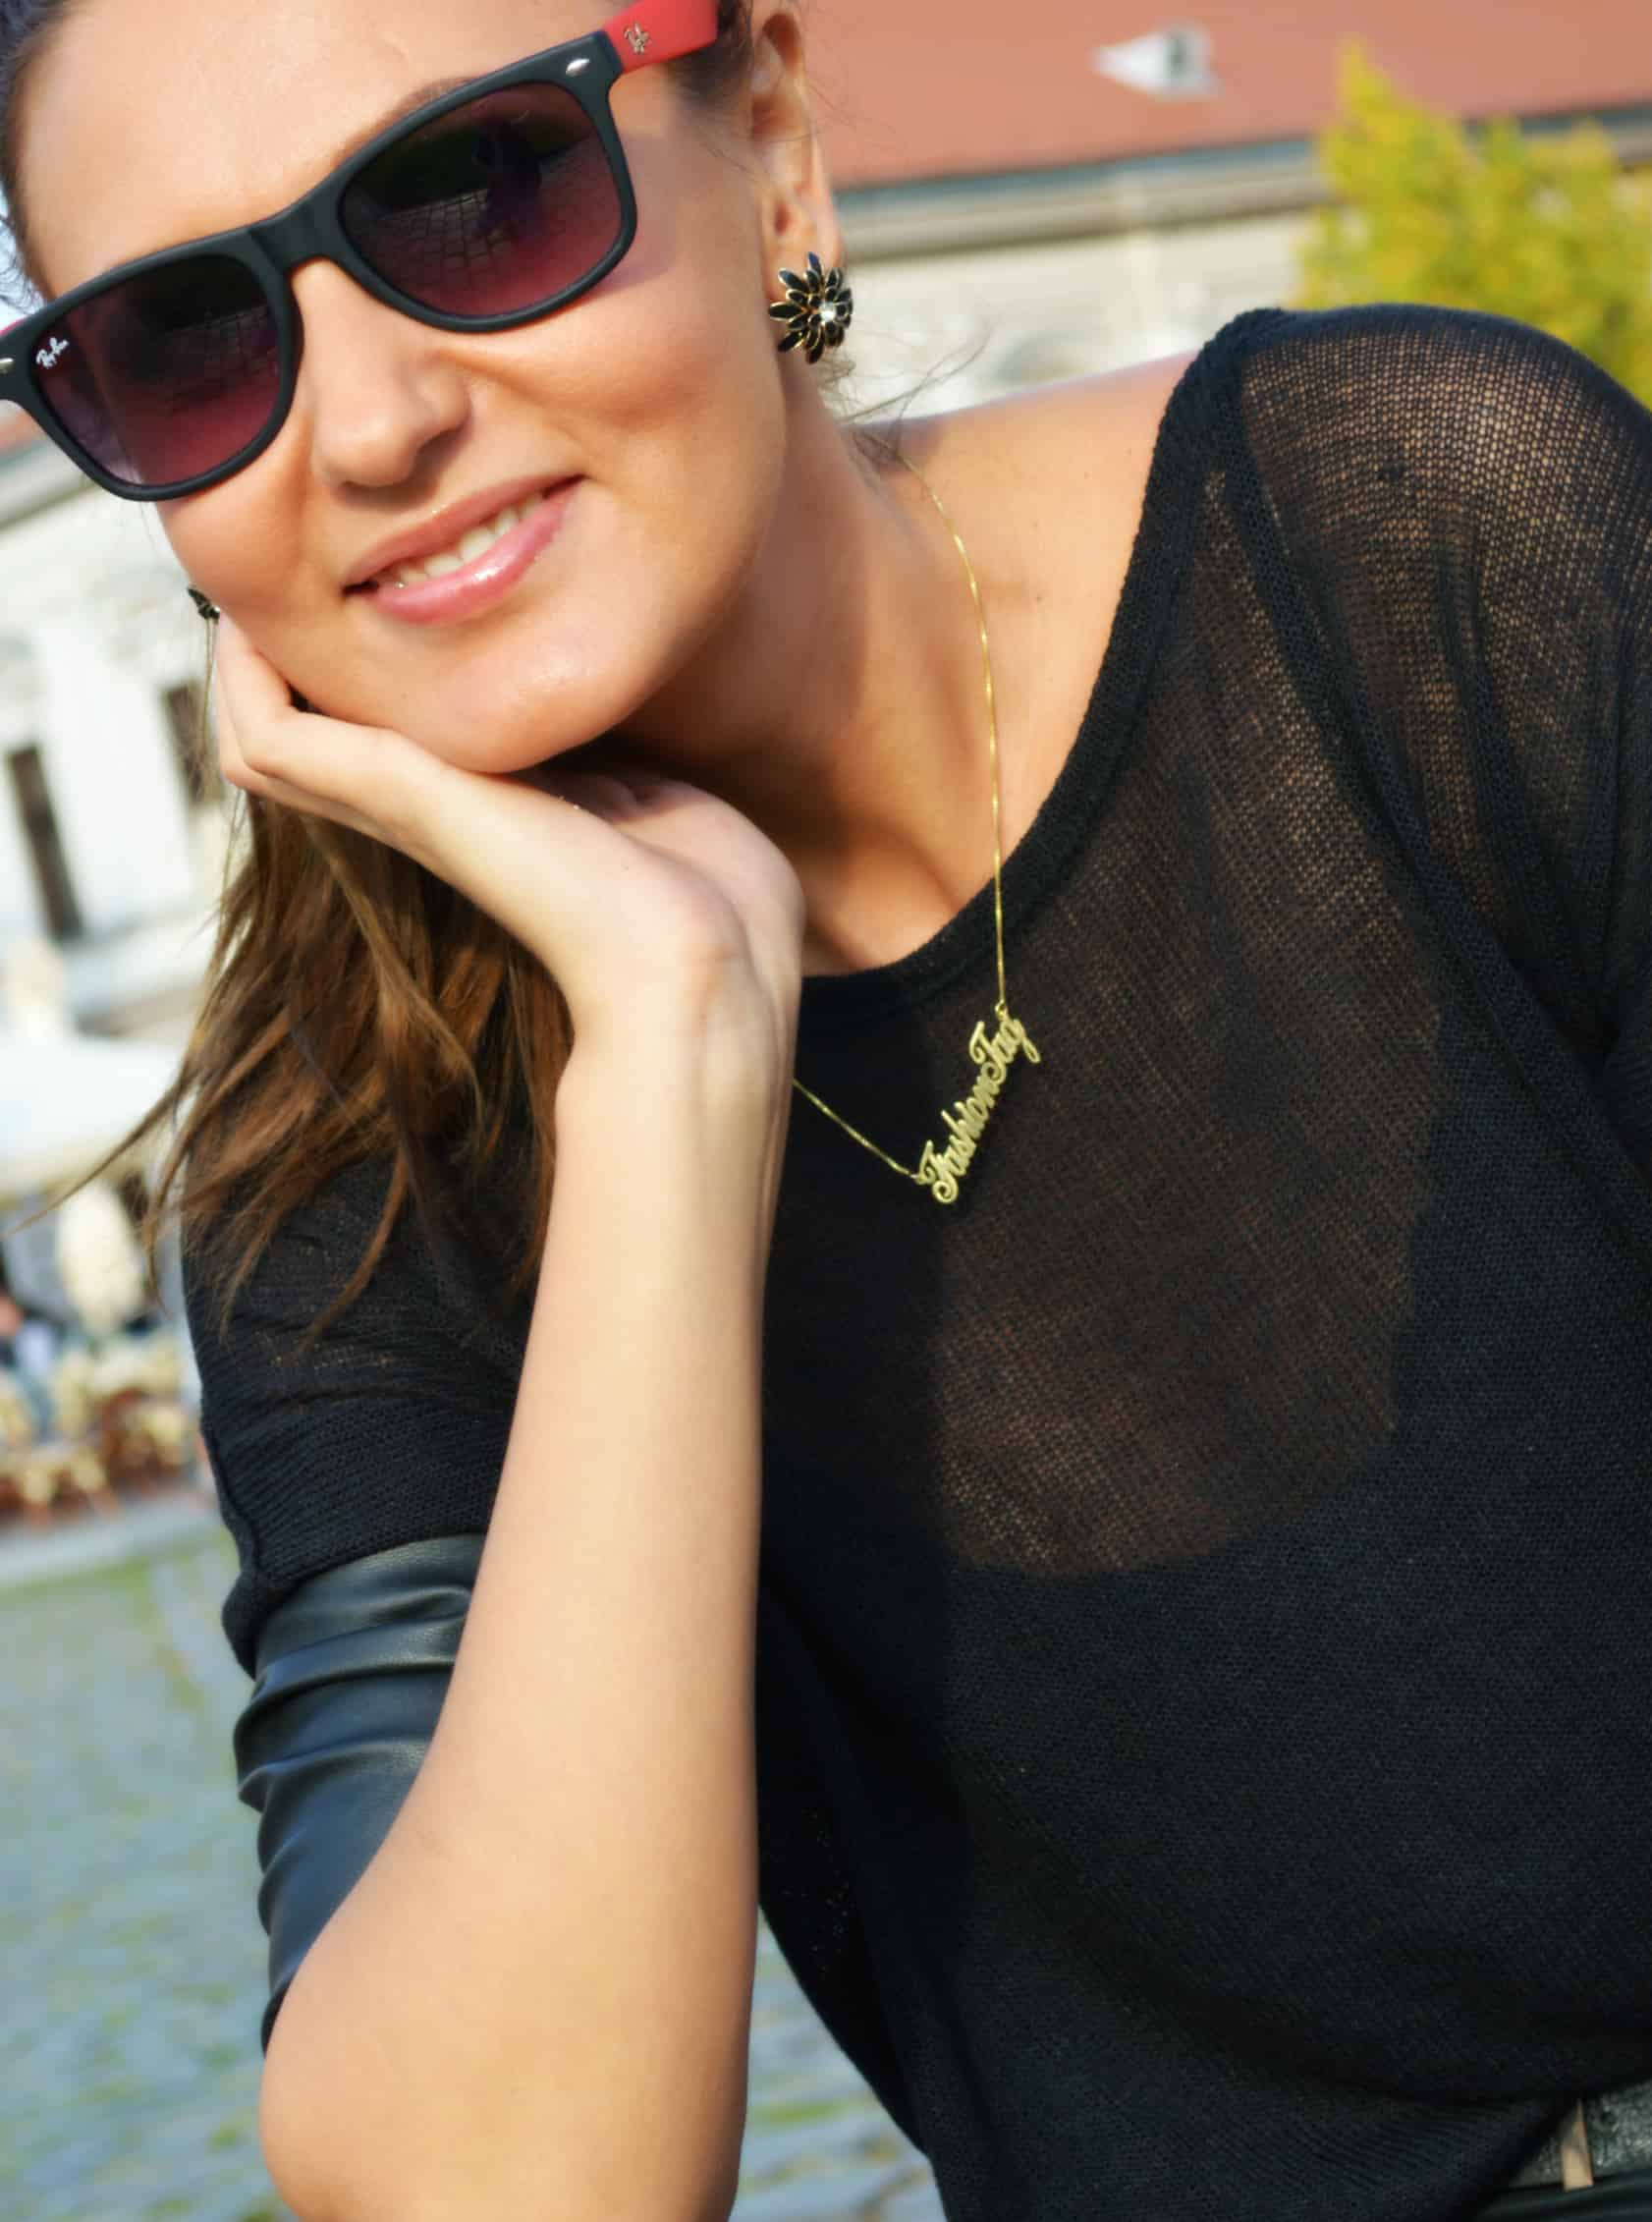 ONecklace-name-necklace-FashionTag-street-style